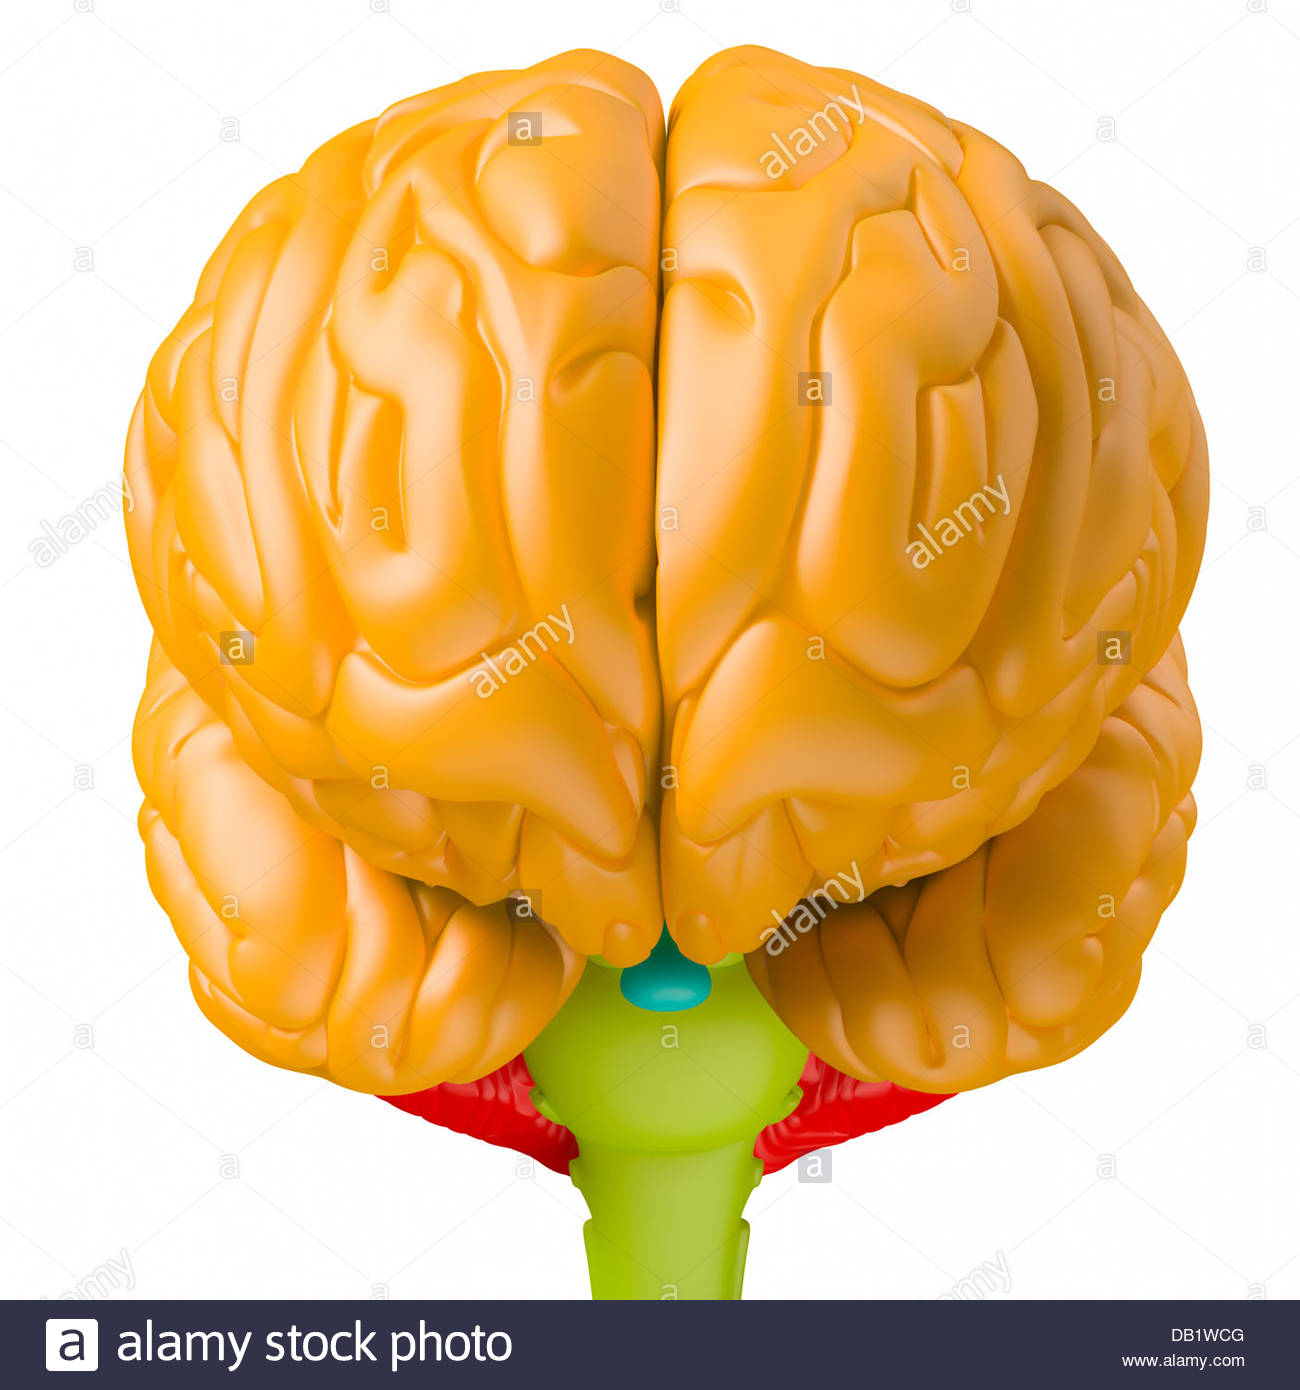 Digital medical illustration depicting the human brain.Orange:brain lobes.Blue:pituitary gland.Green: brain stem.Red: - Stock Image